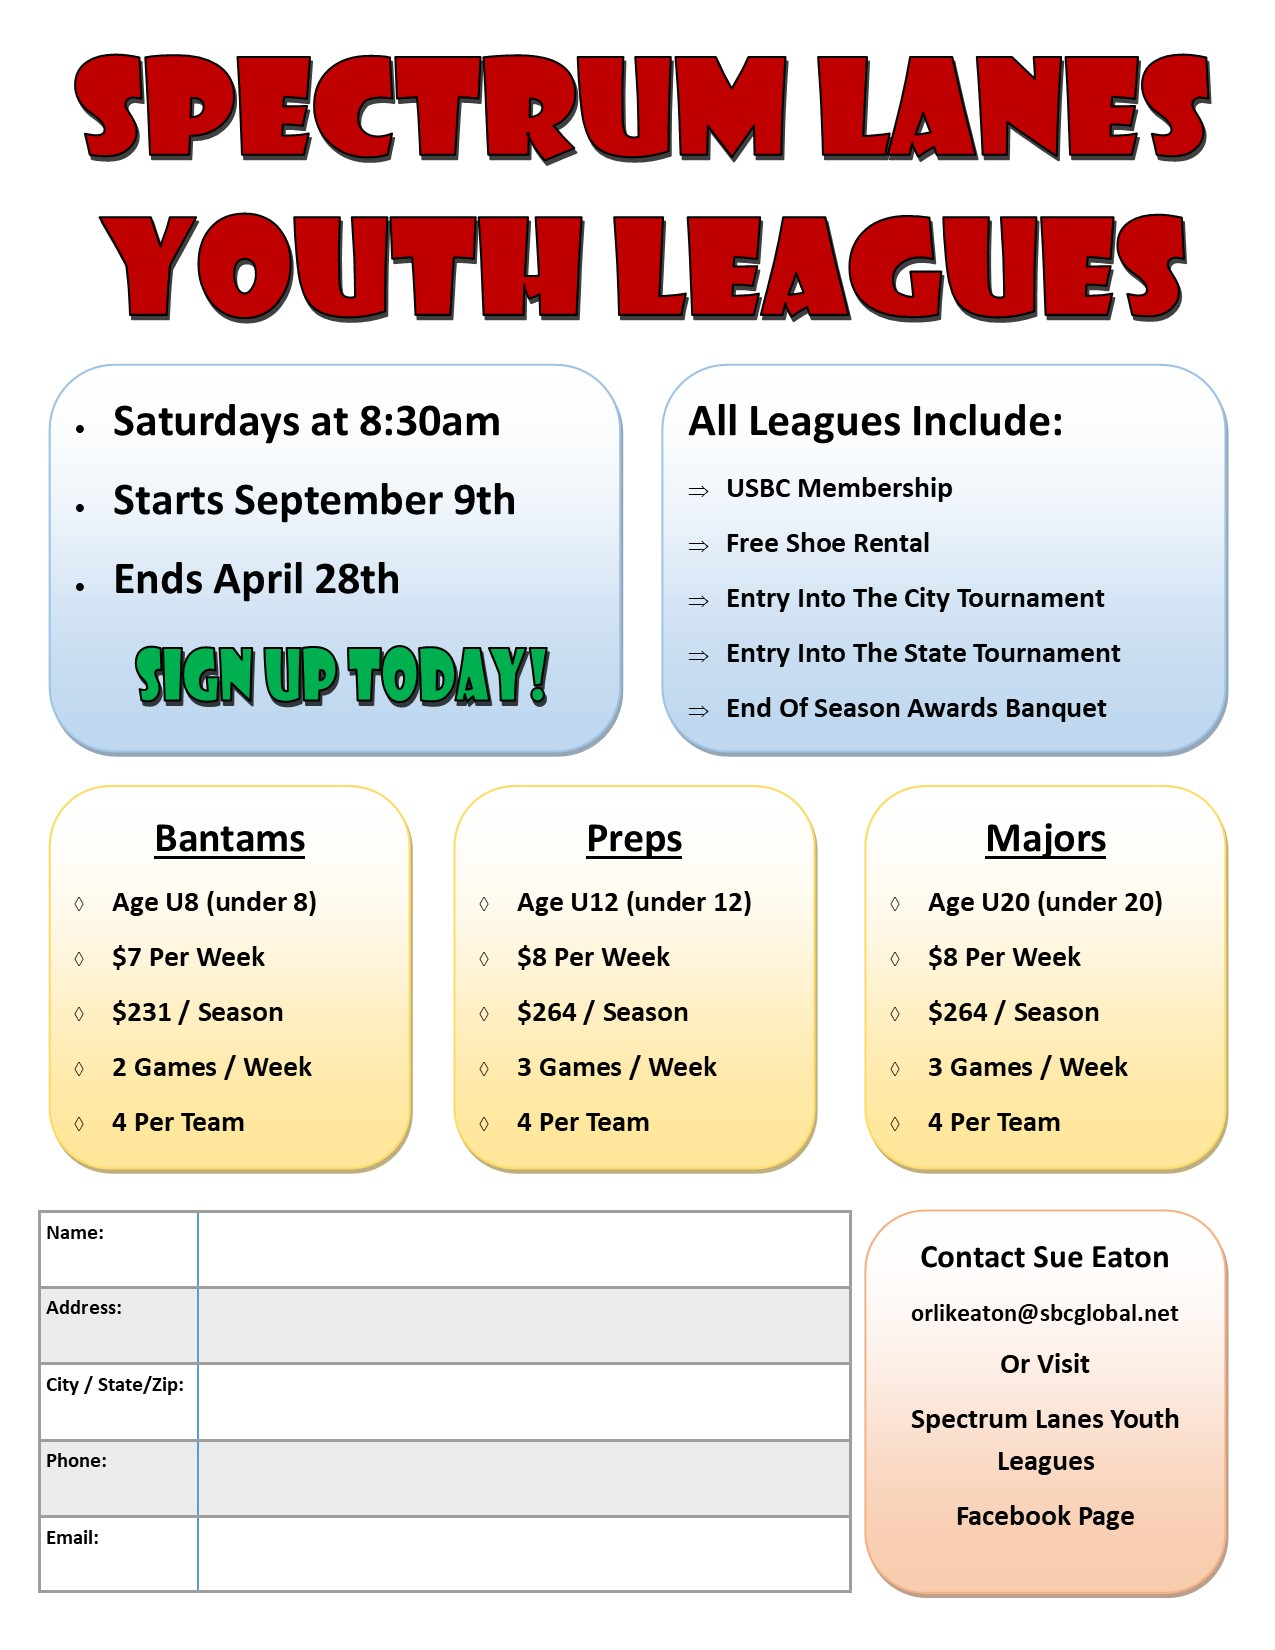 spectrum lanes youth leagues